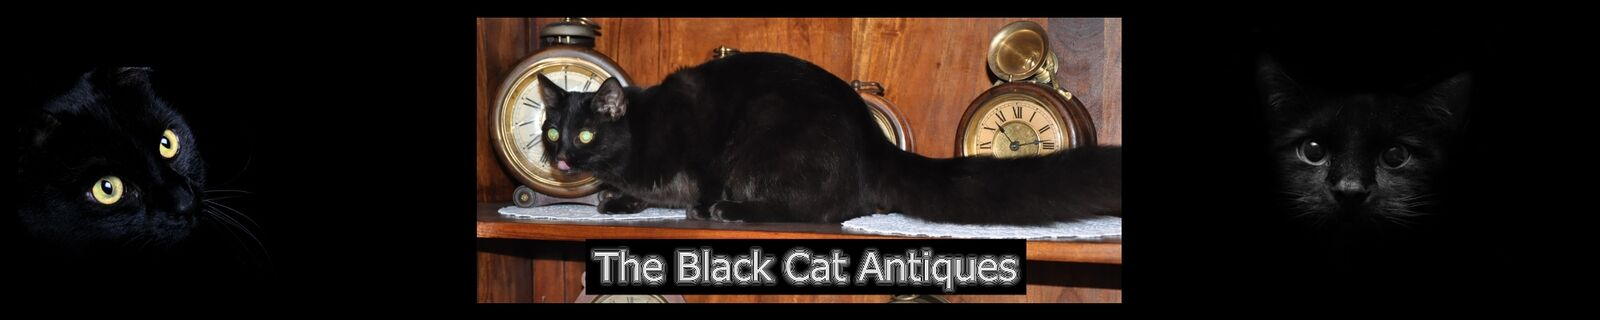 The Black Cat Antiques